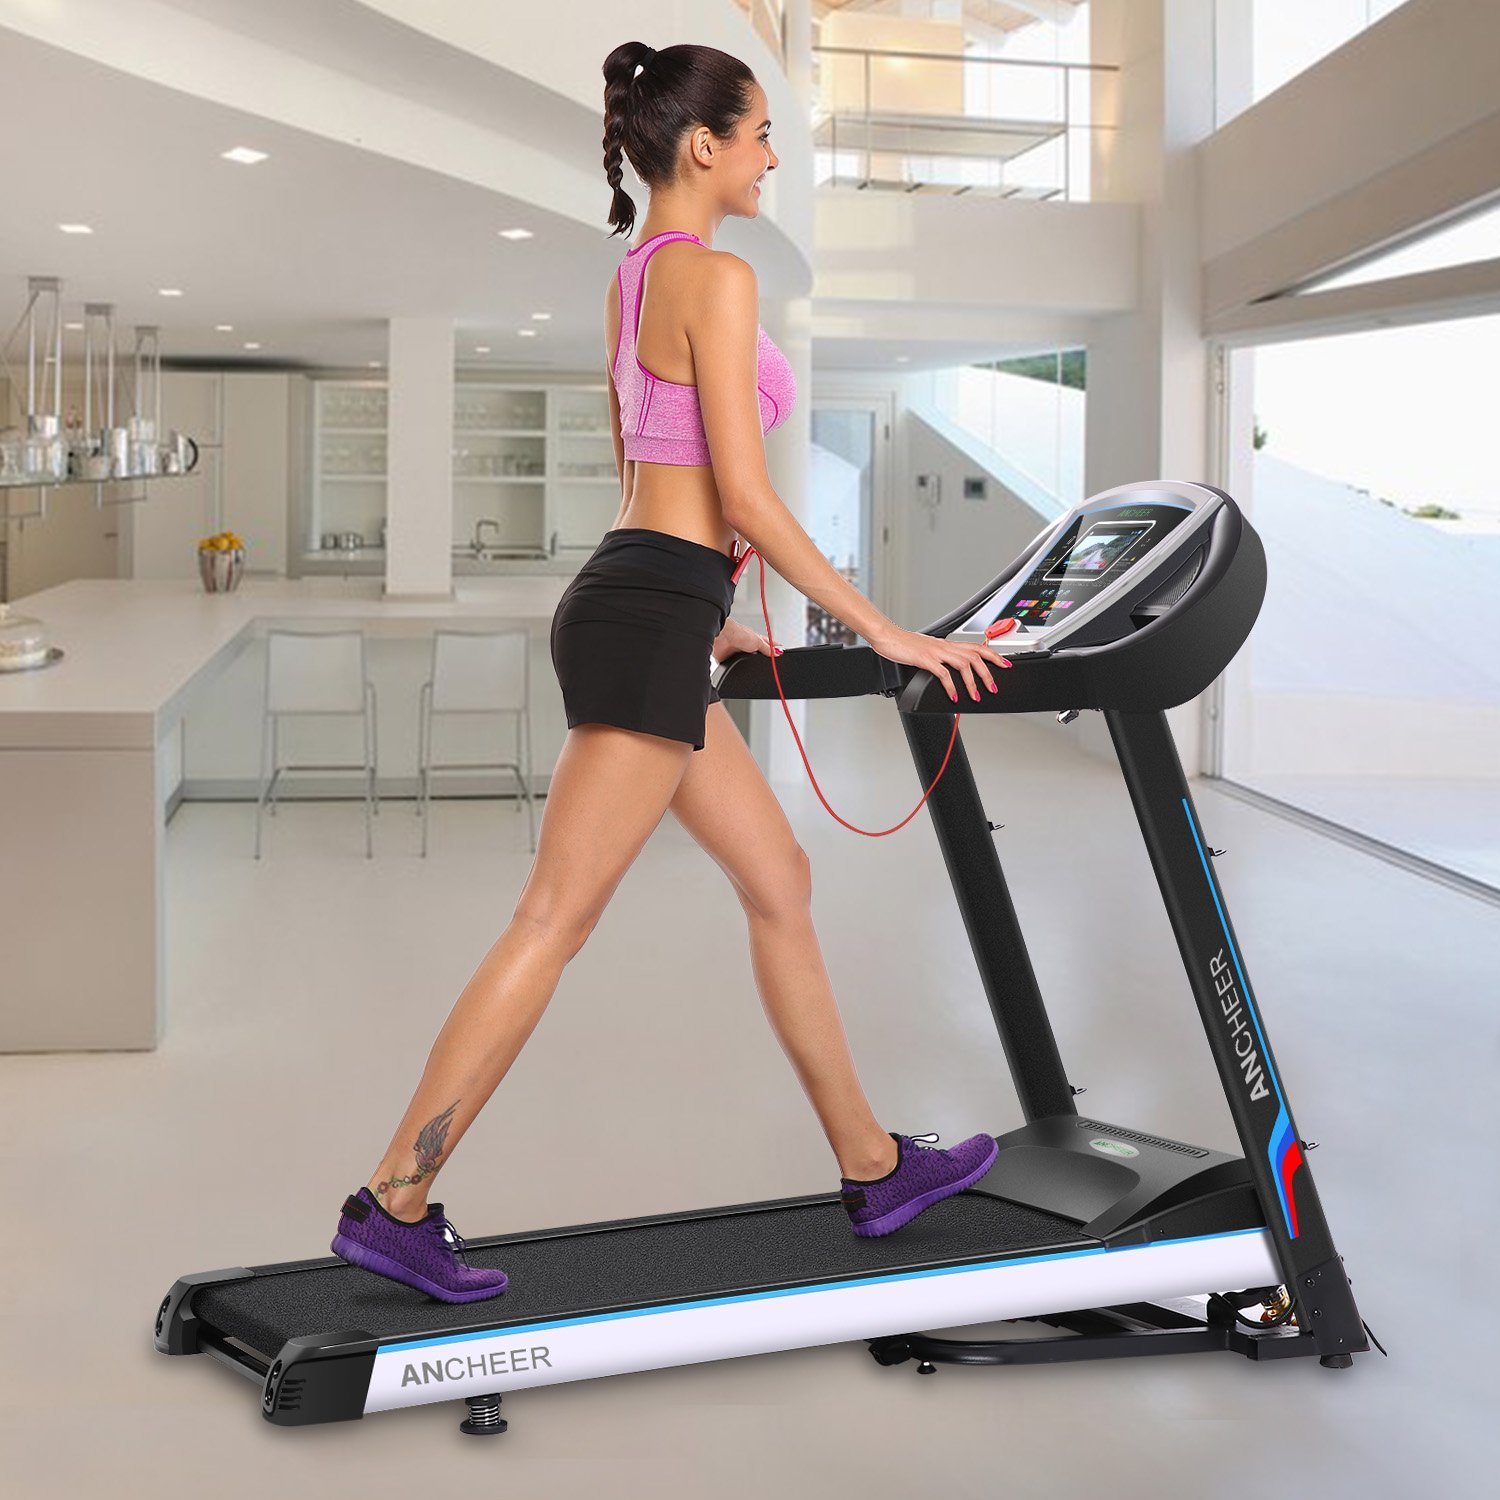 Top 3 Best Small Under Desk Treadmills 2019: Best Treadmill Under $700 In 2018-2019